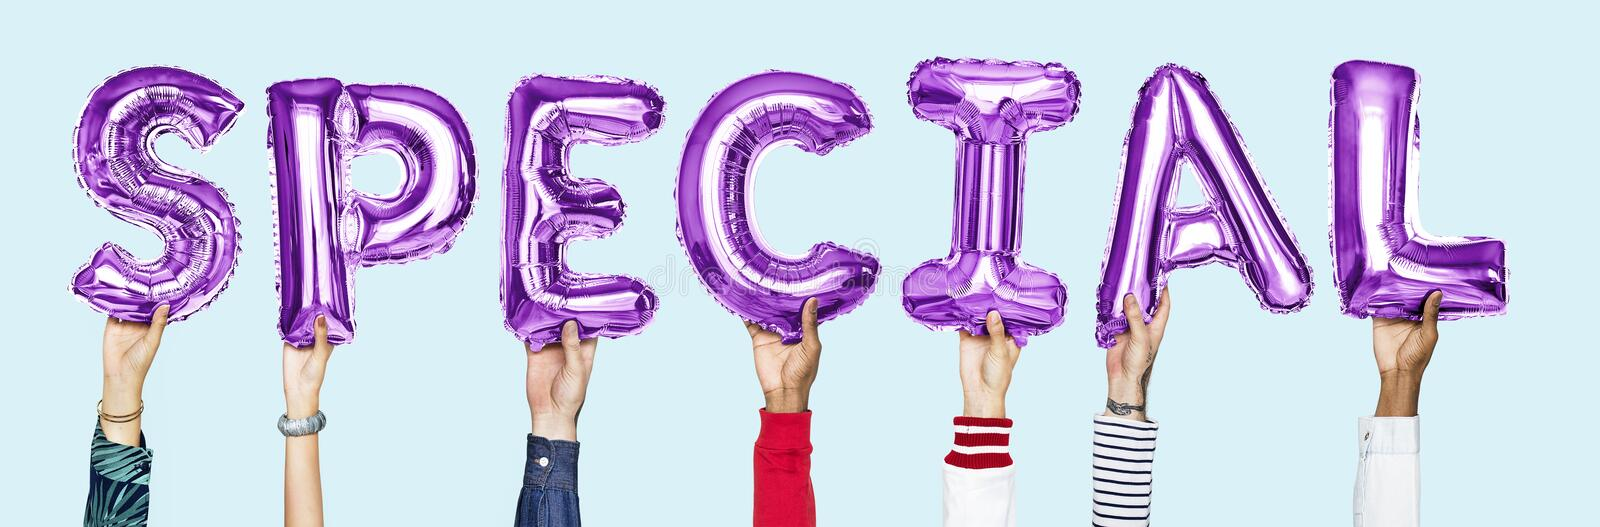 Purple alphabet balloons forming the word special royalty free stock photography